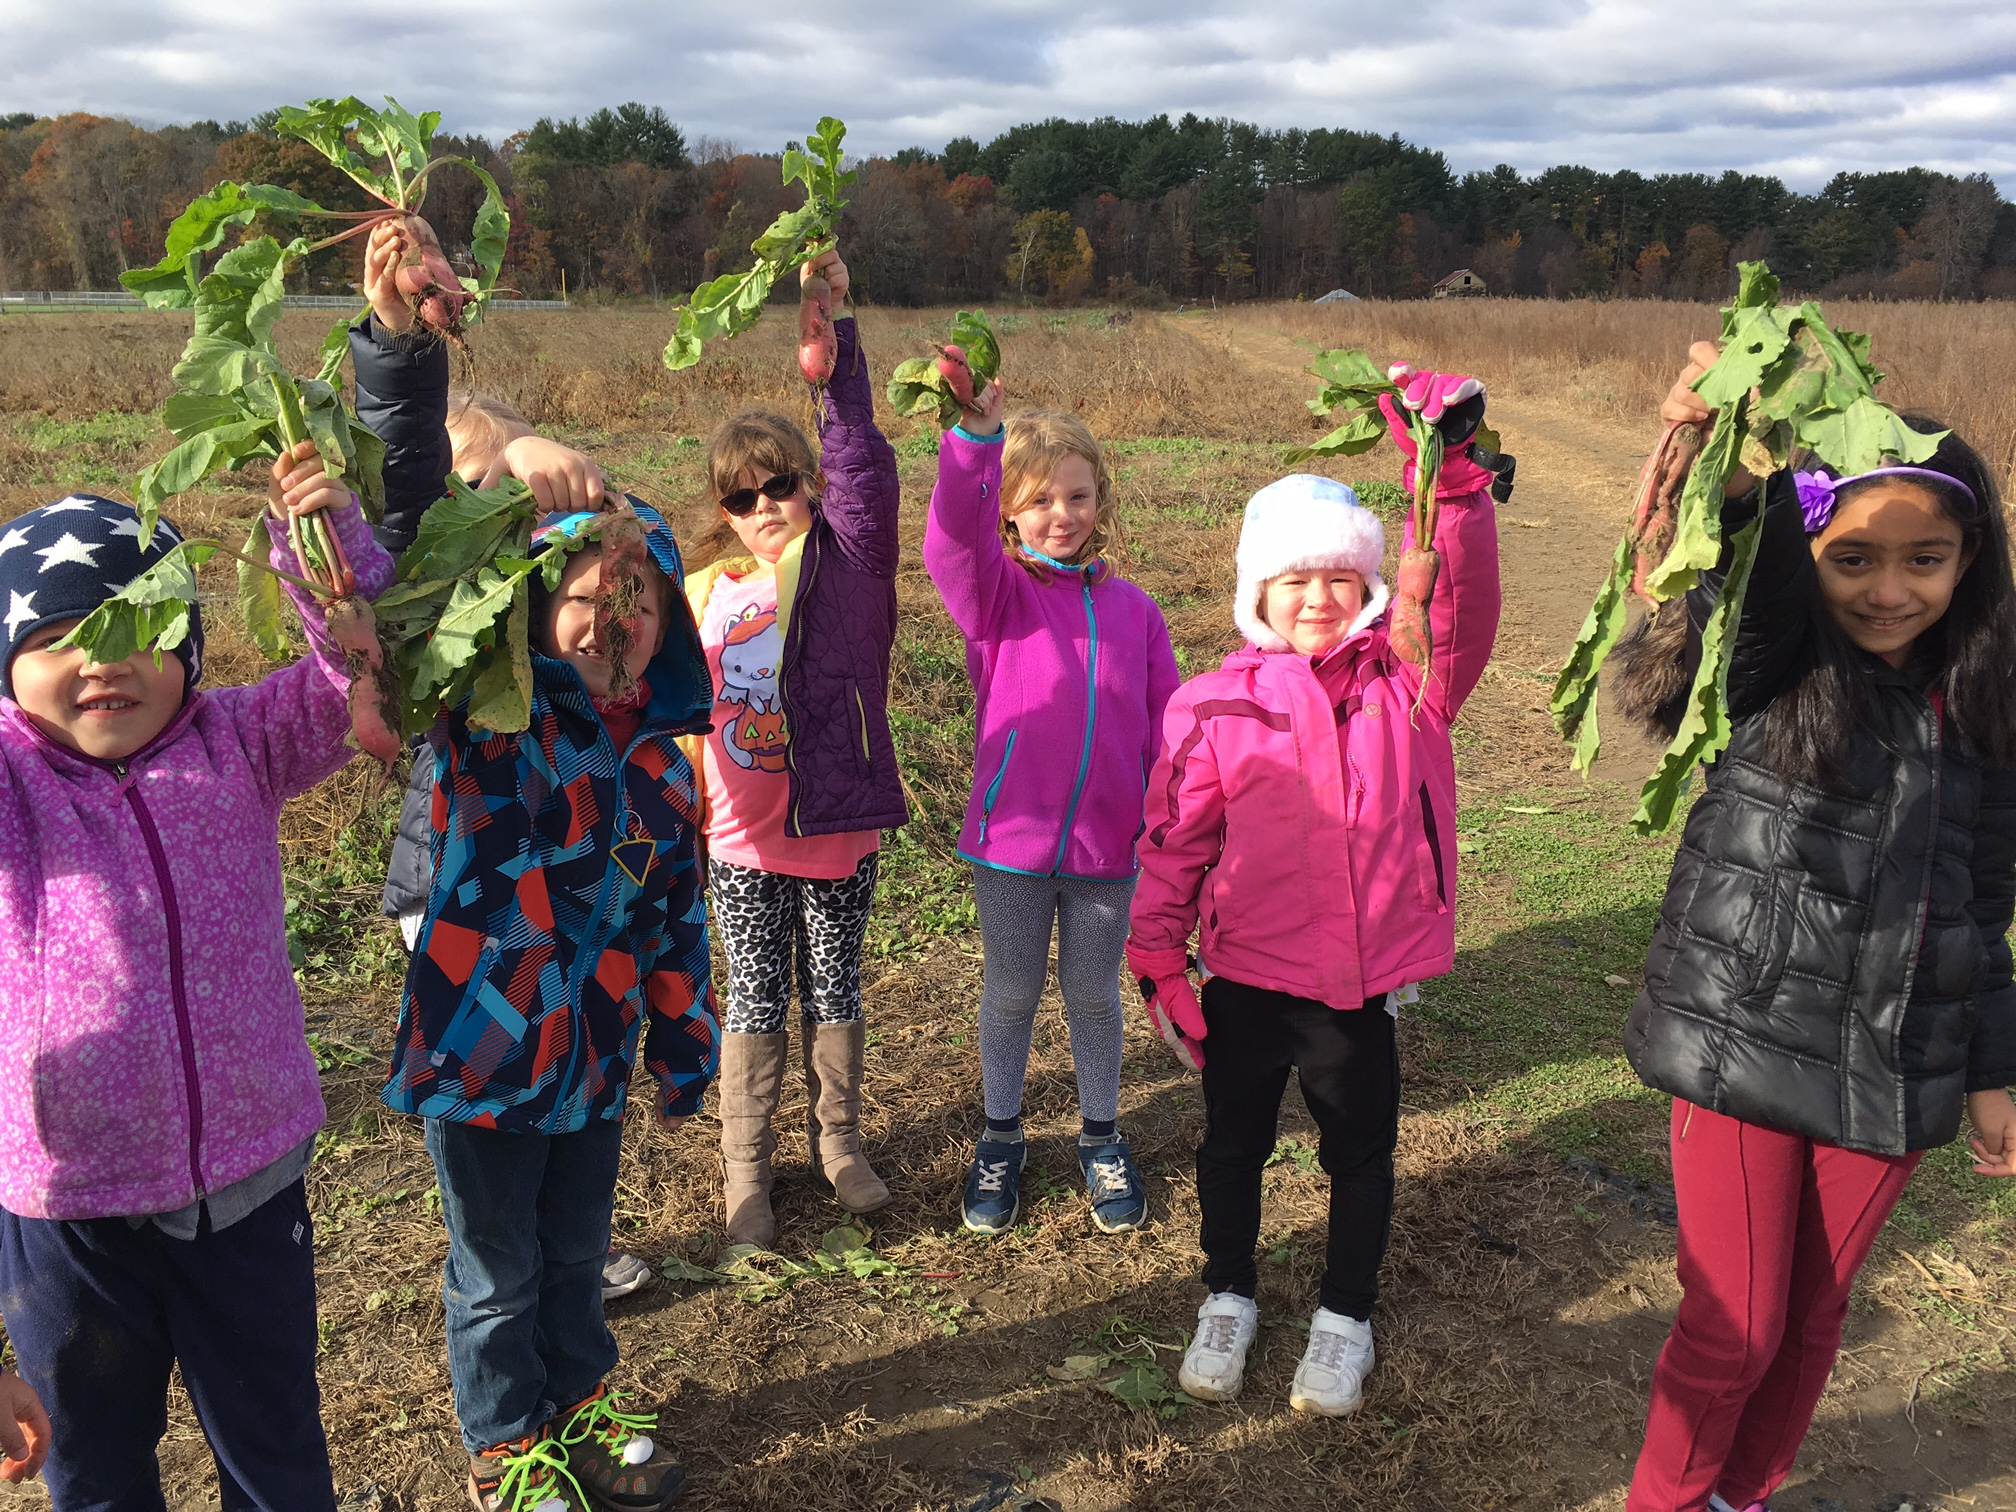 Students on a field trip at Crimson & Clover Farm